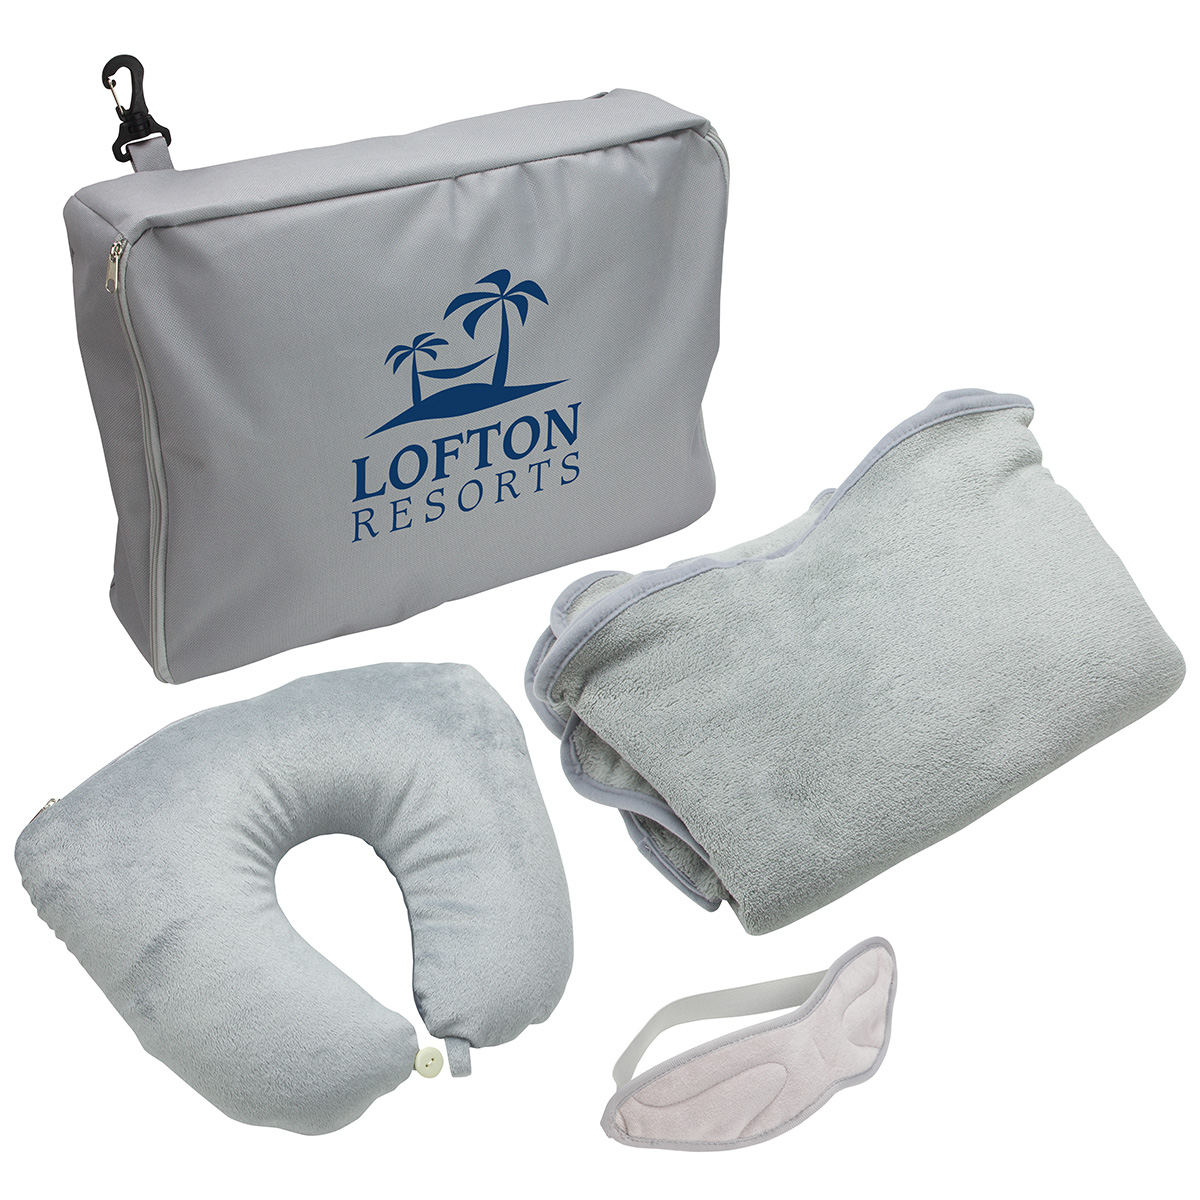 Three Piece Travel Pillow and Blanket Set, WTV-TP15 - 1 Colour Imprint